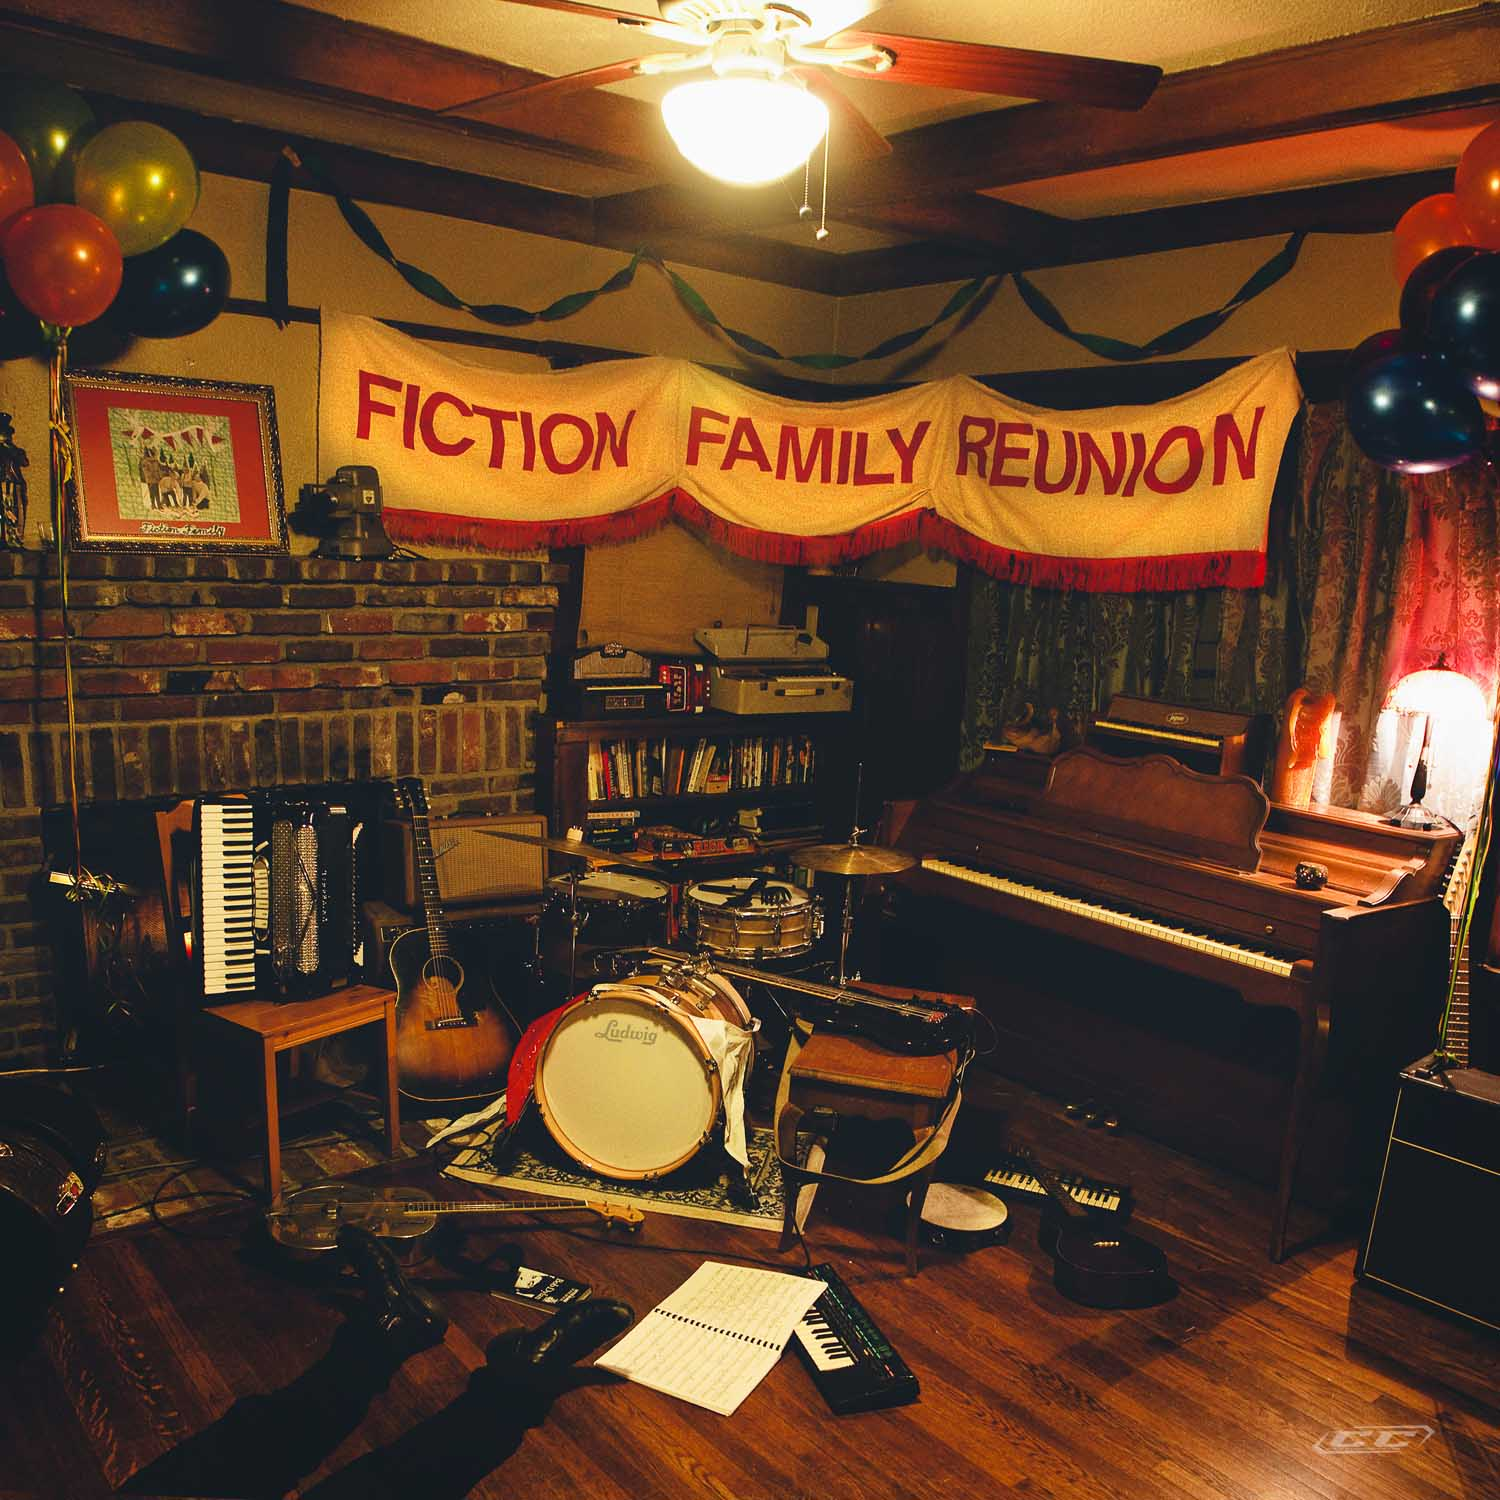 Fiction Family - Fiction Family Reunion 2013 English Christian Album Download